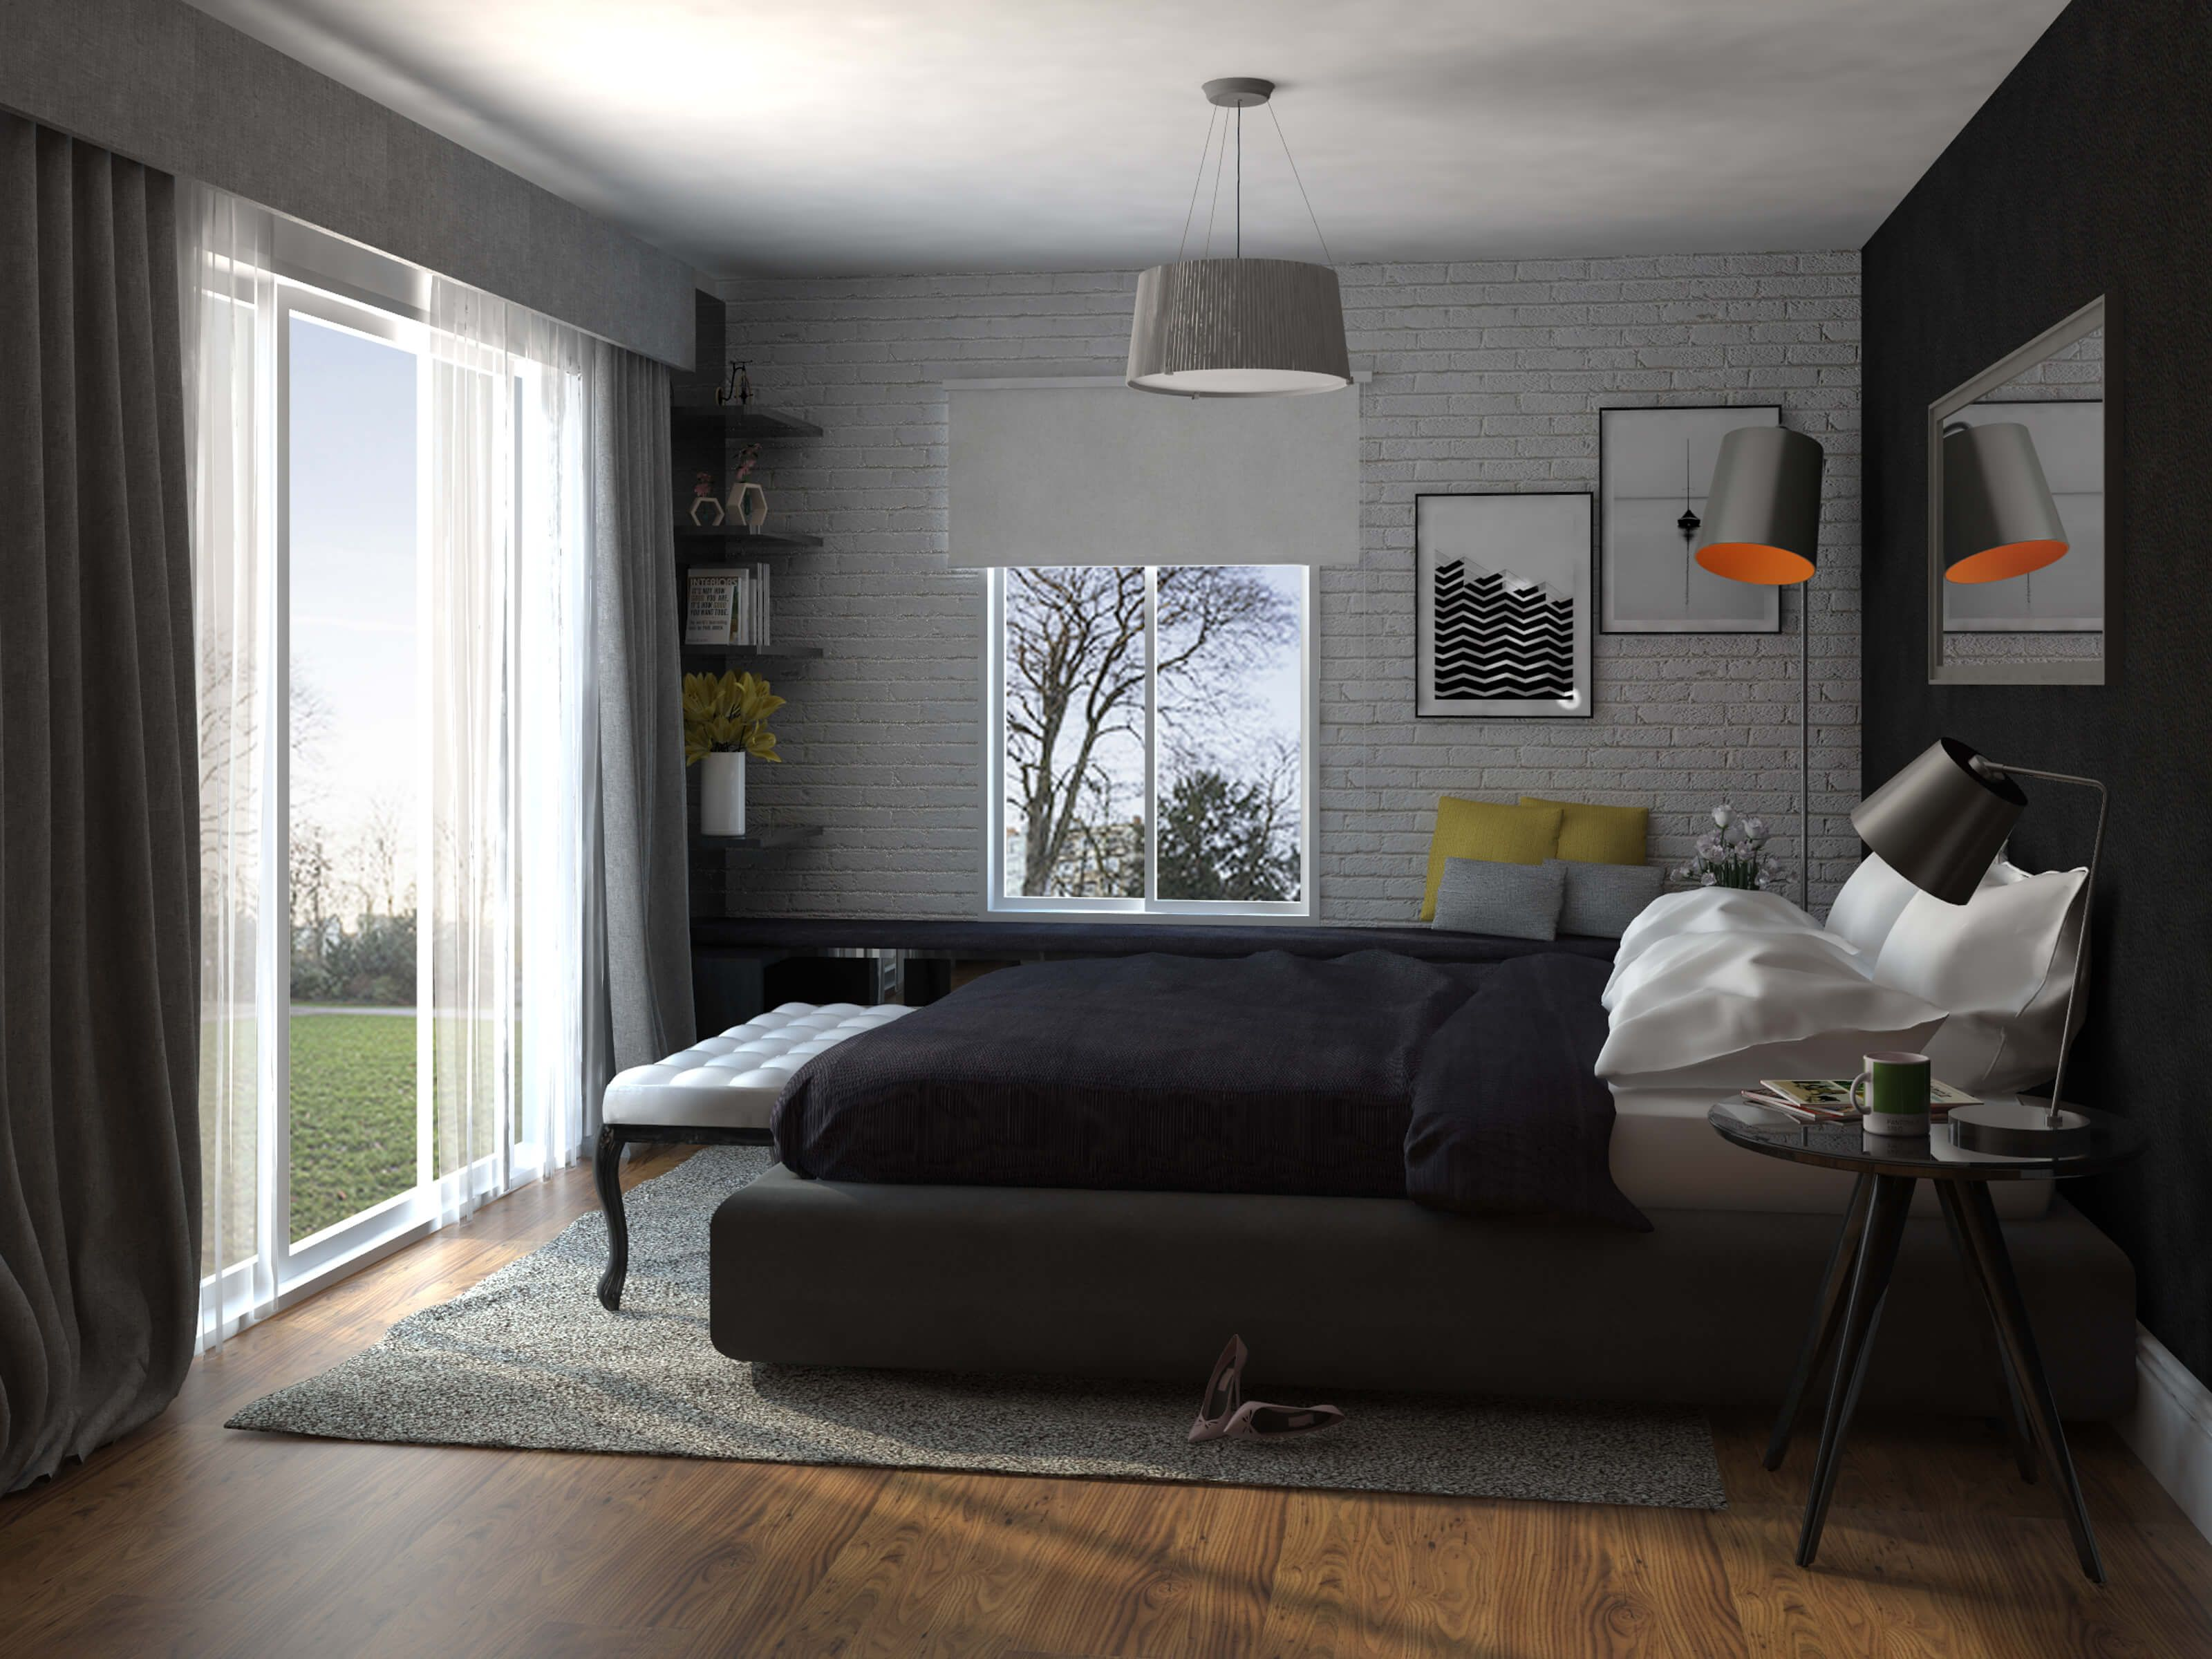 Awesome Before And After Bedroom Renovation Ideas Master Bedroom Renovation Remodel Bedroom Bedroom Renovation